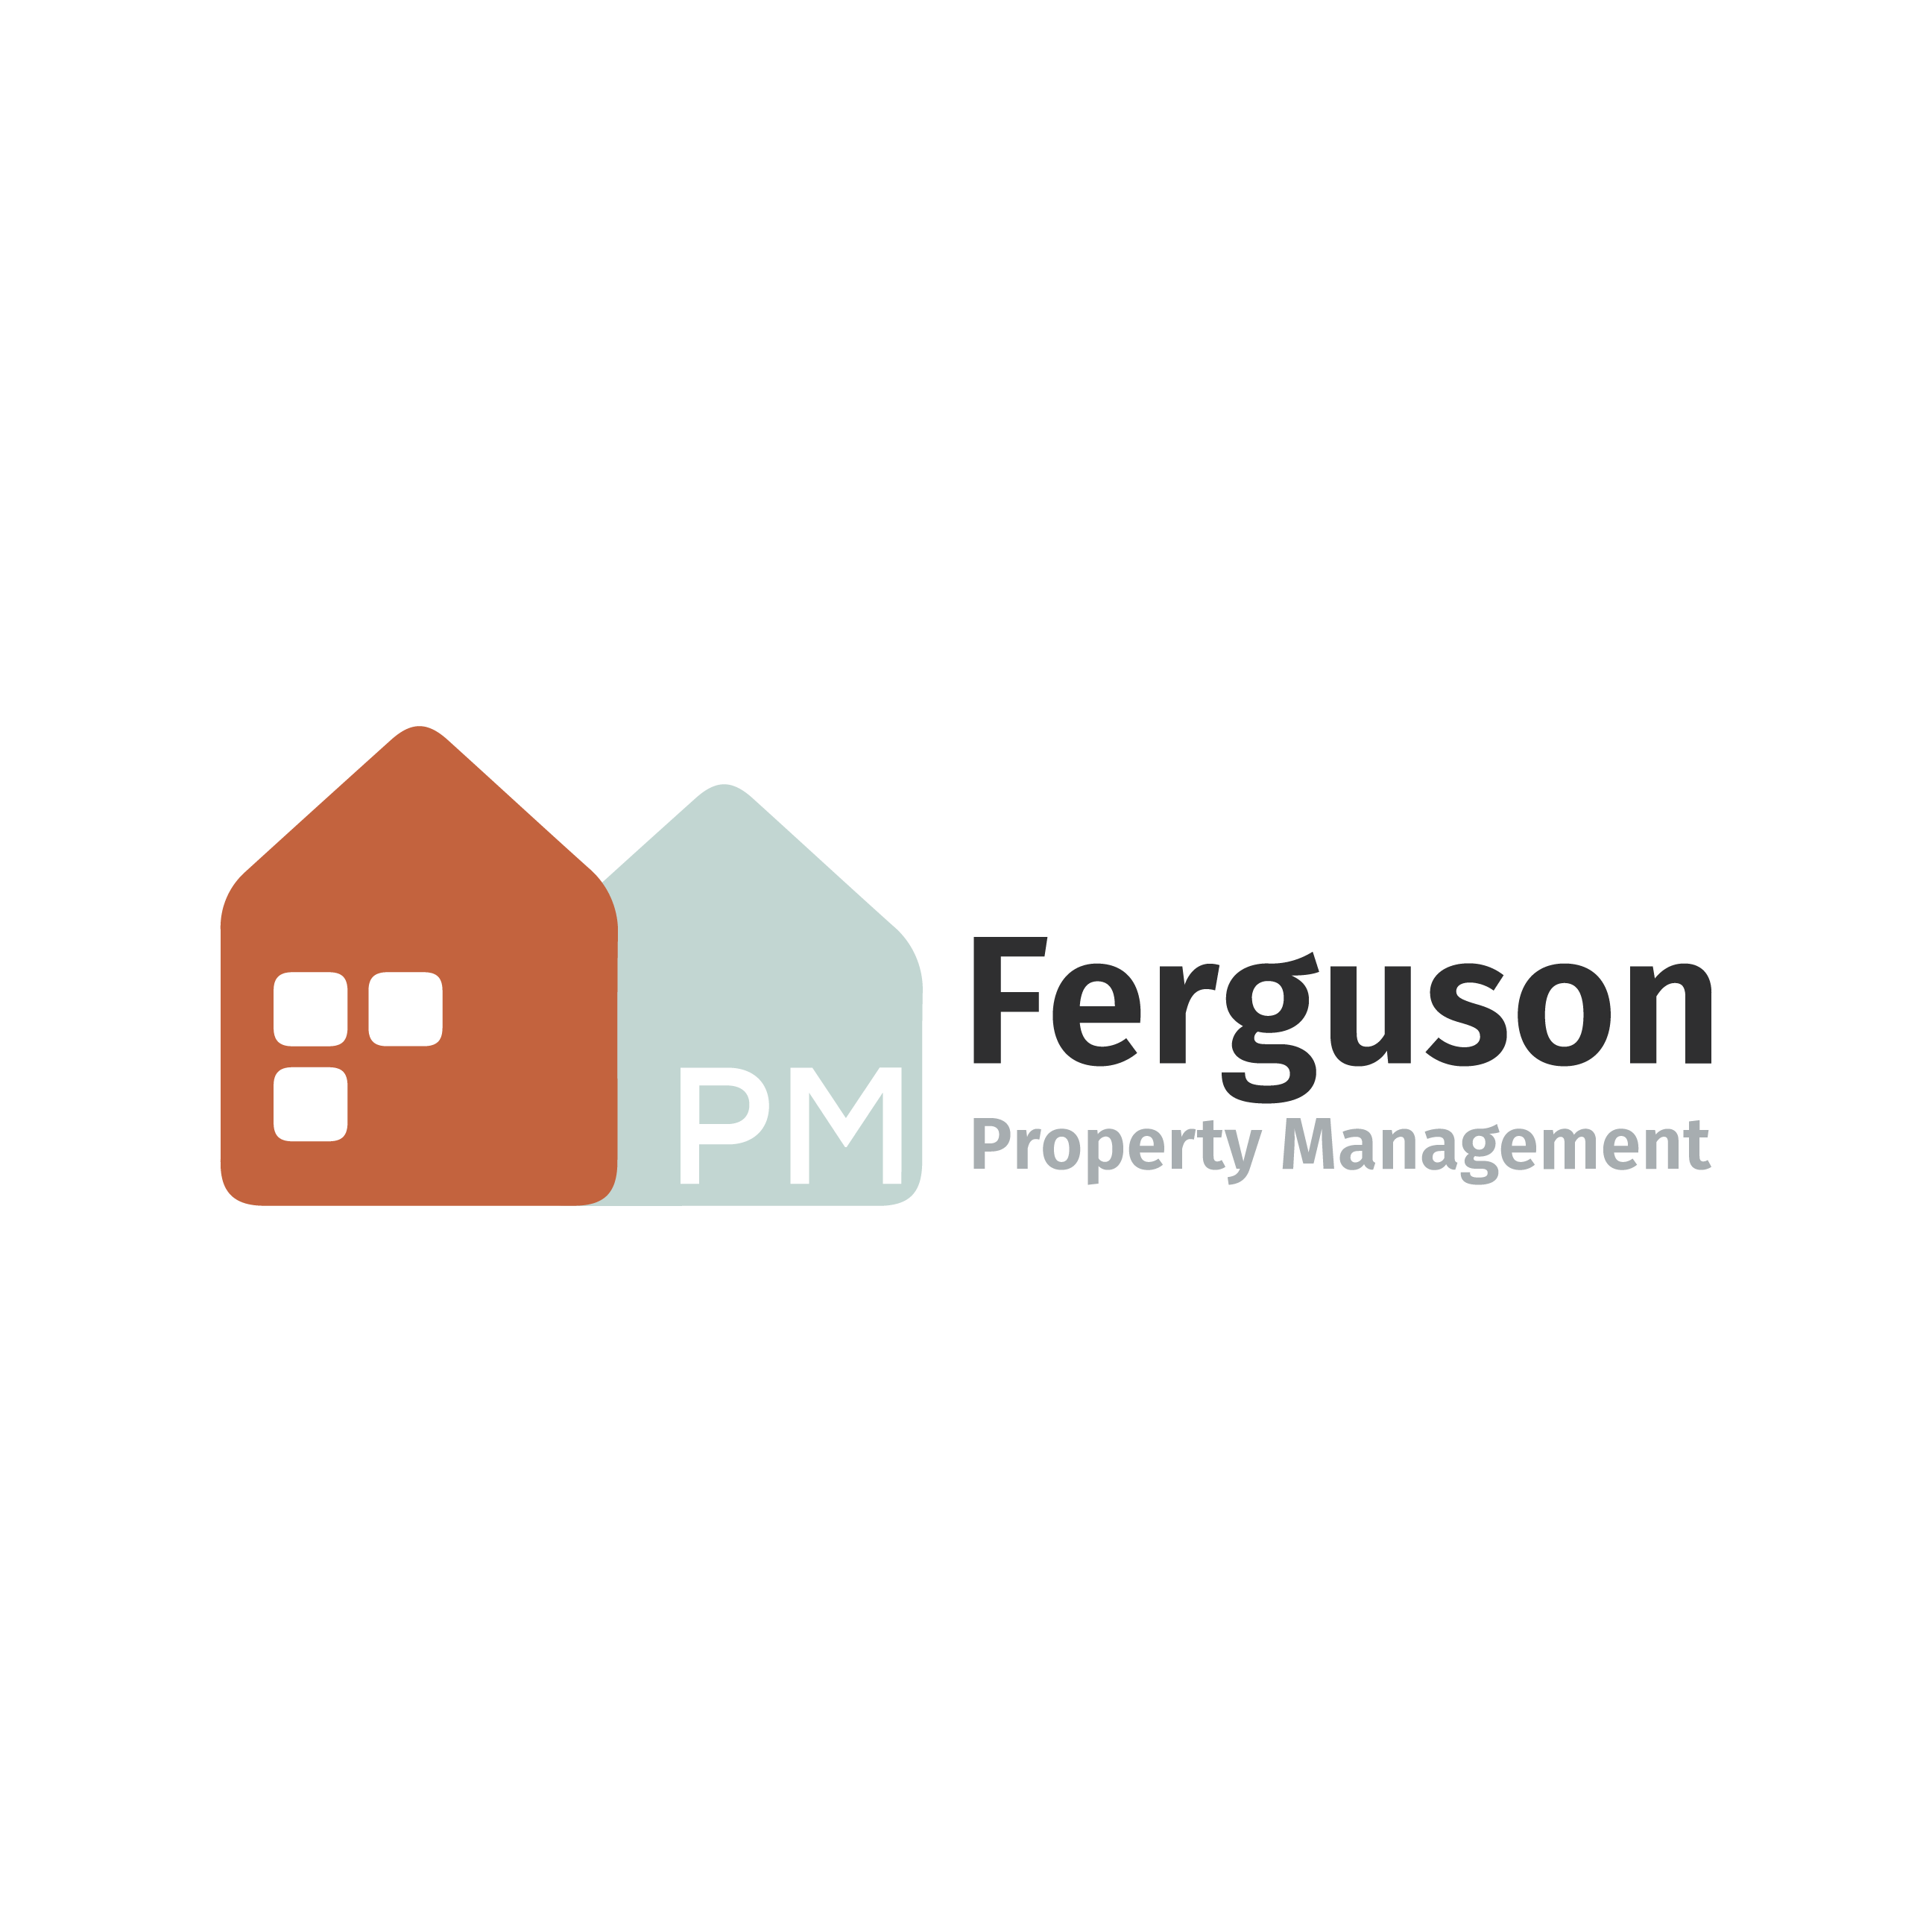 Ferguson Property Management